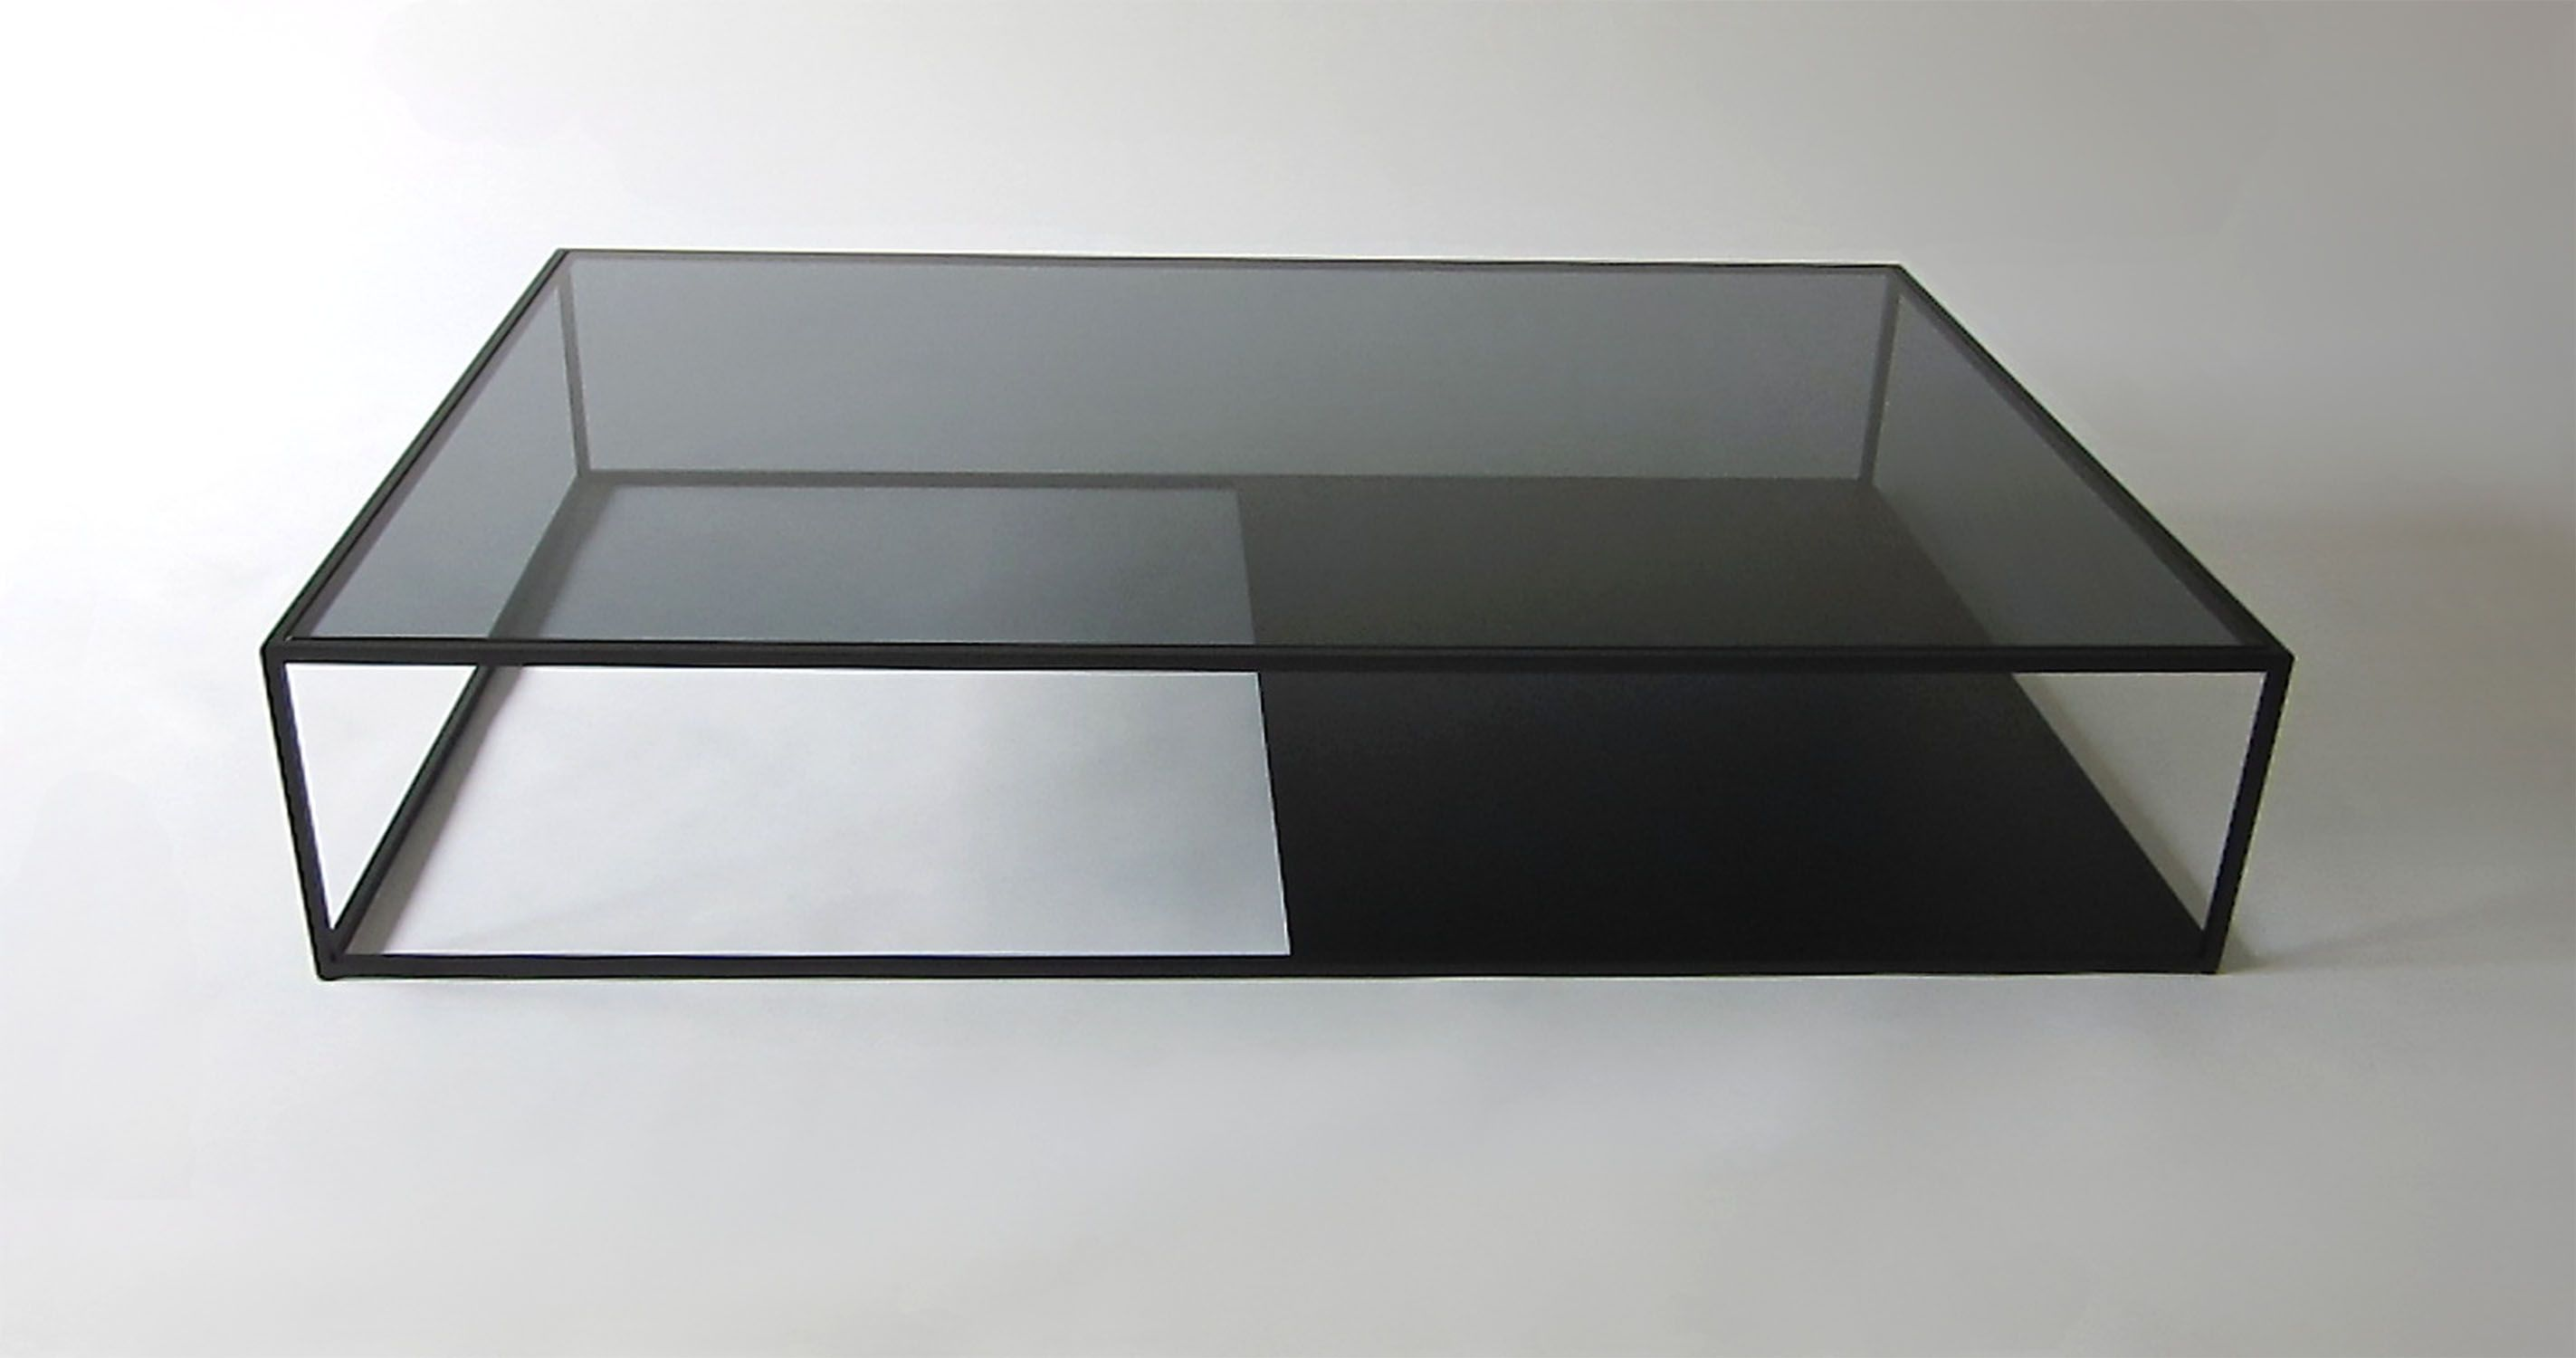 Half Half Coffee Table By Reza Feiz For Phase Design Coffee Table Design Coffee Table Modern Glass Coffee Table [ 1500 x 2846 Pixel ]